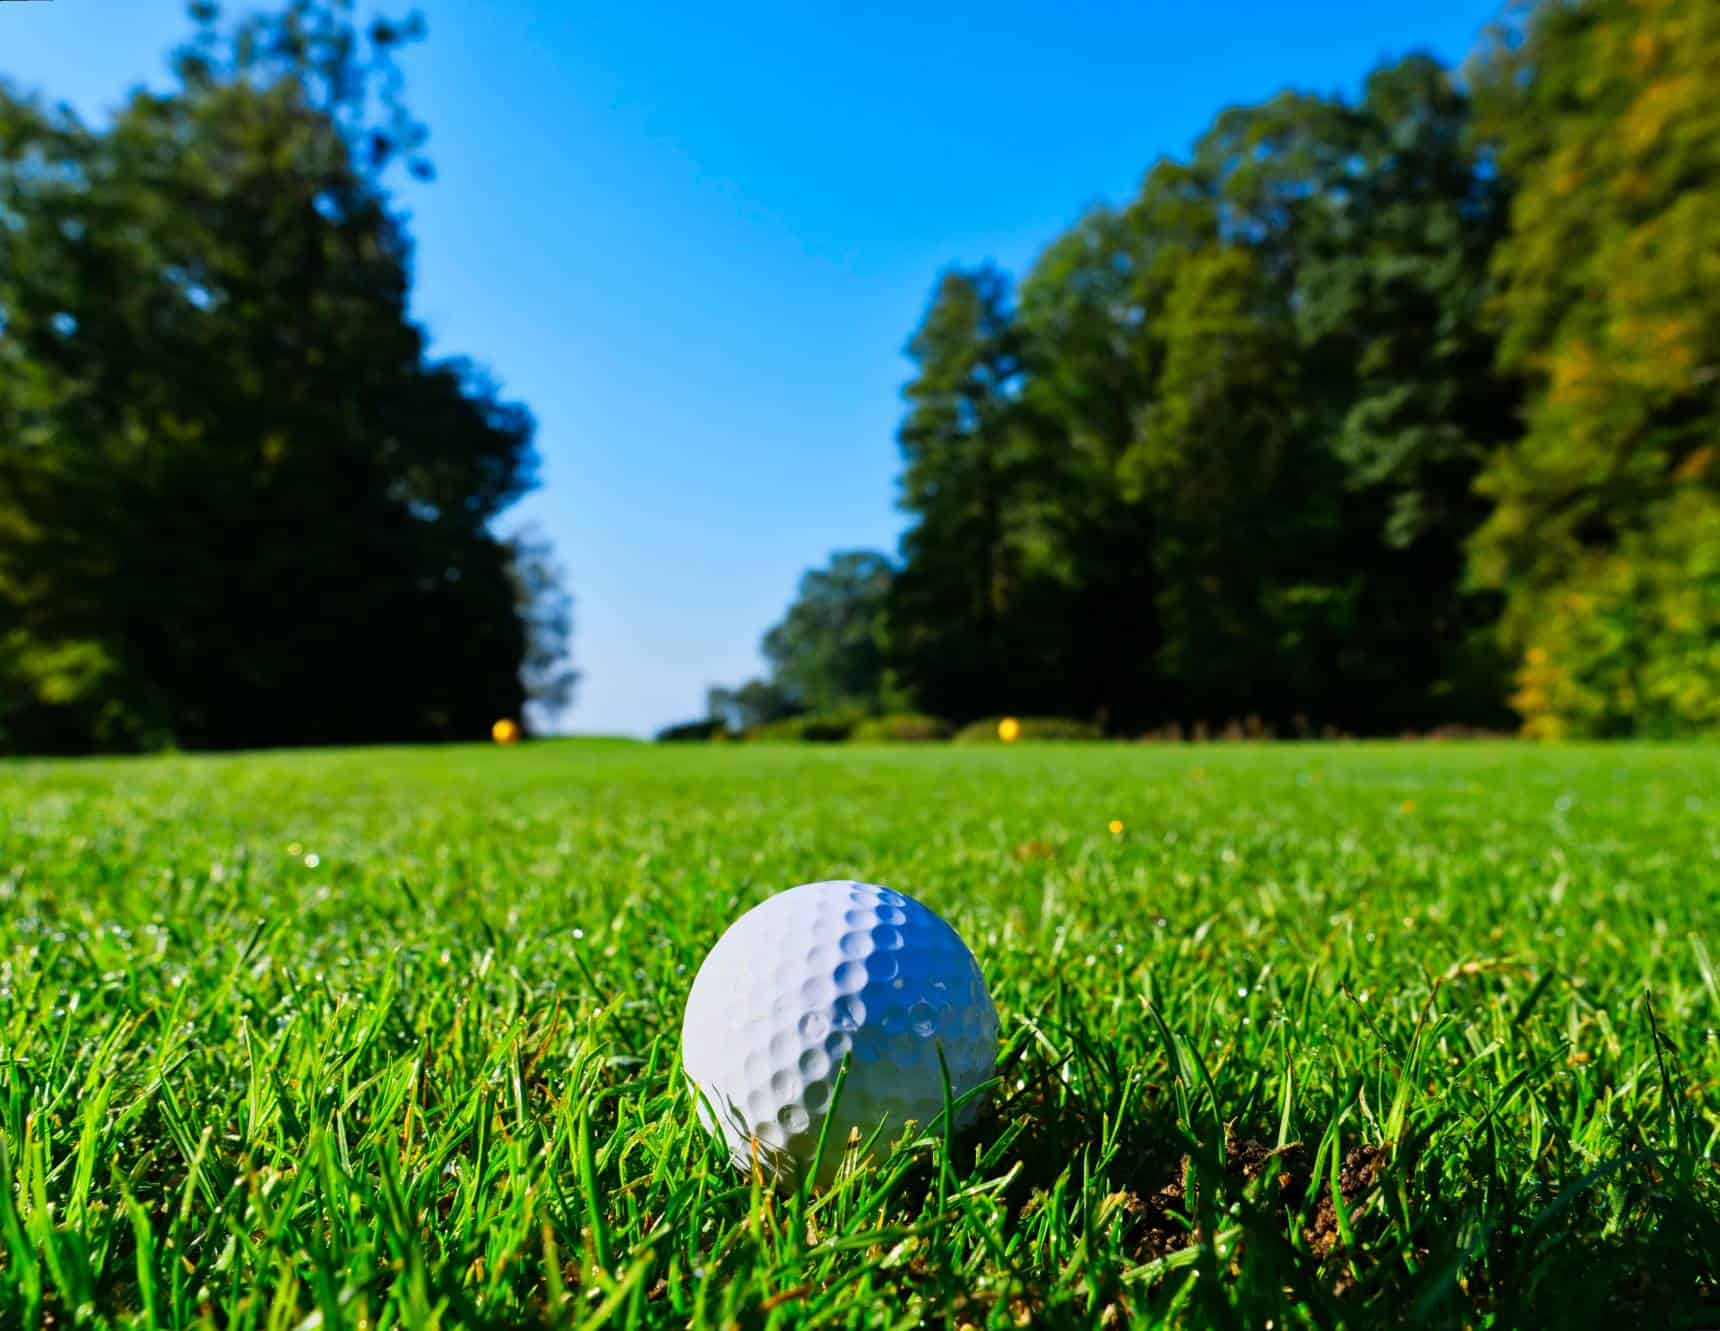 are golf greens real grass?